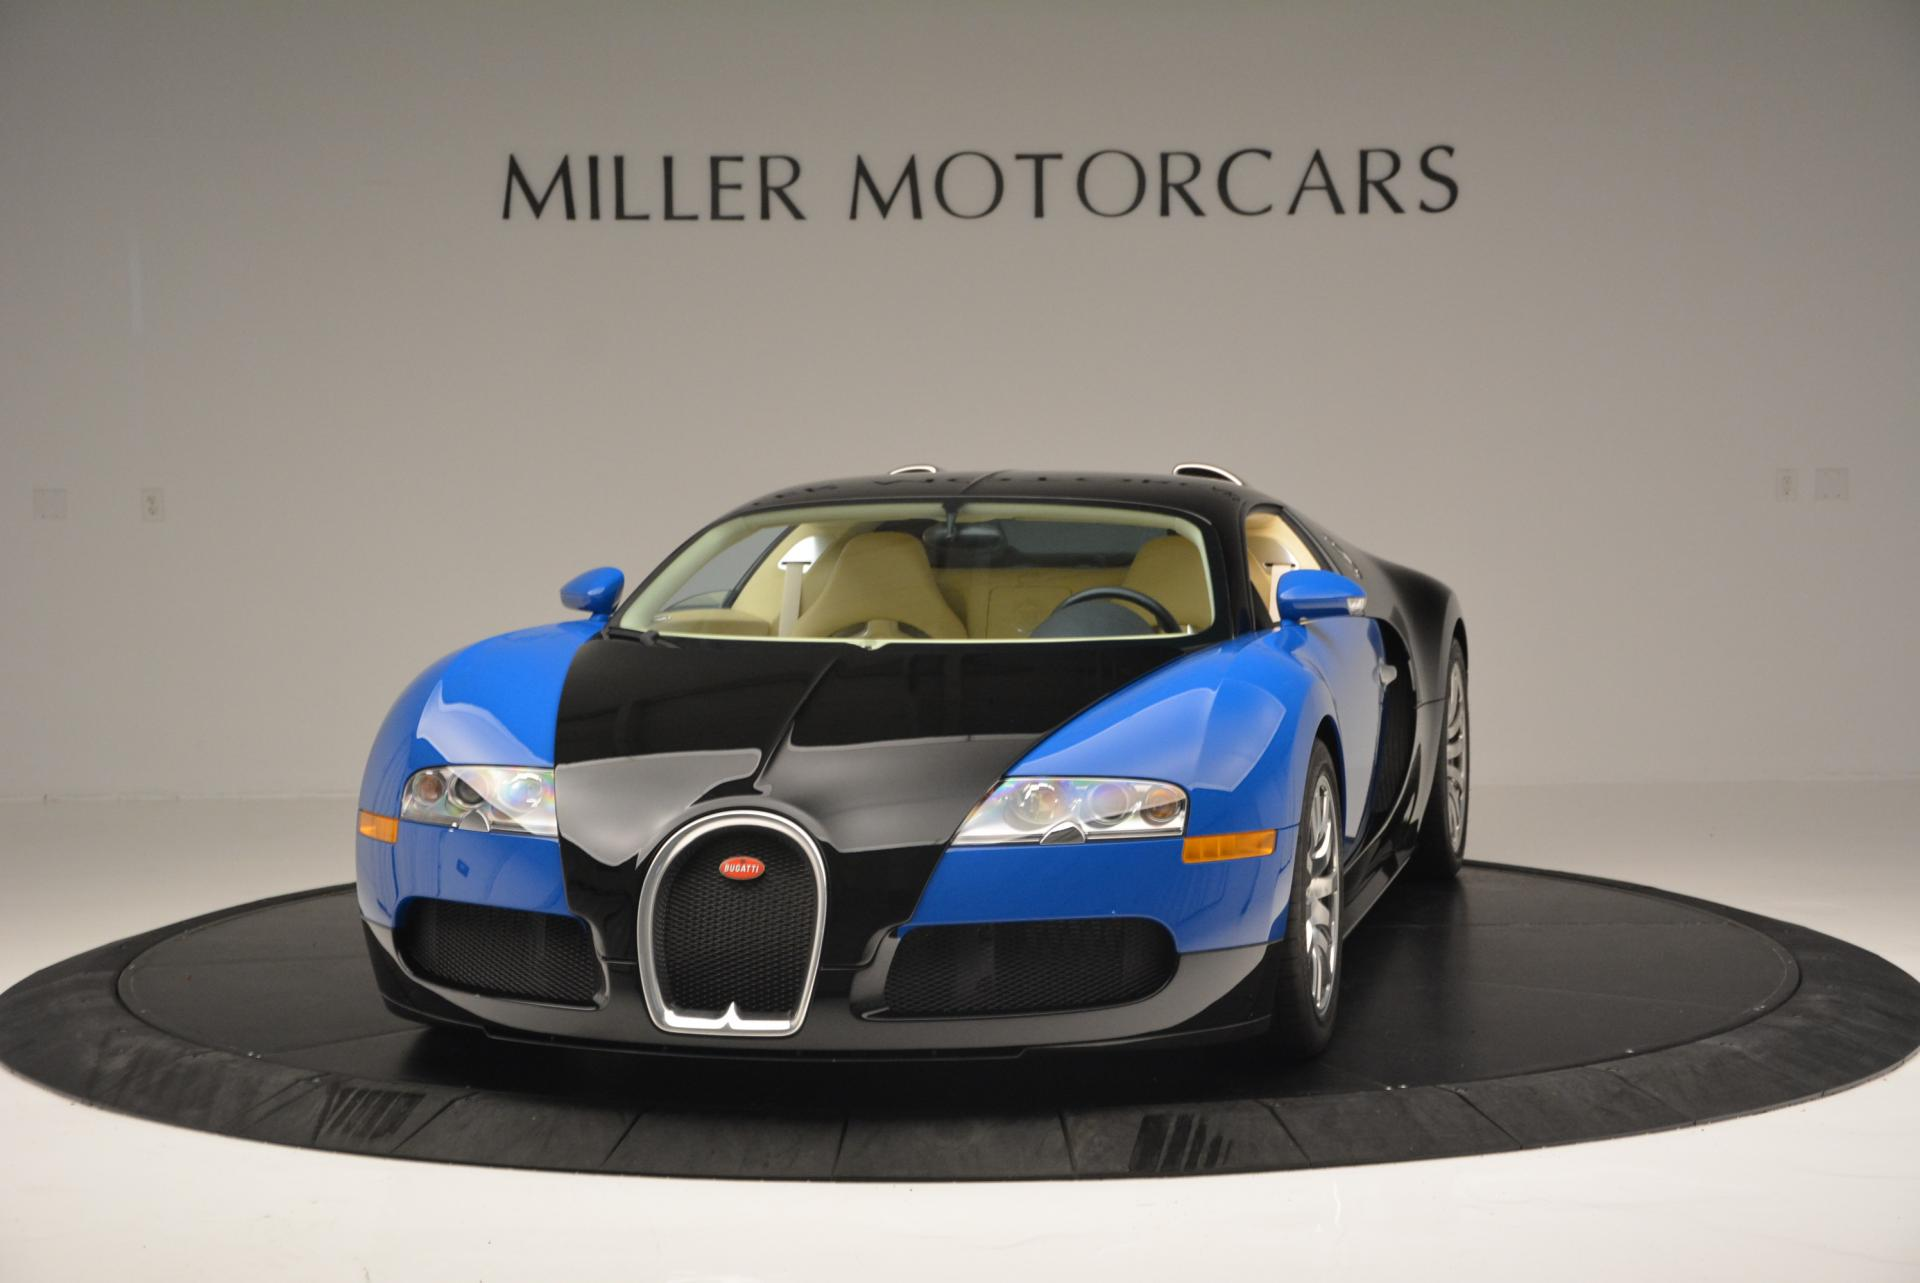 Used 2006 Bugatti Veyron 16.4 for sale Sold at Bentley Greenwich in Greenwich CT 06830 1